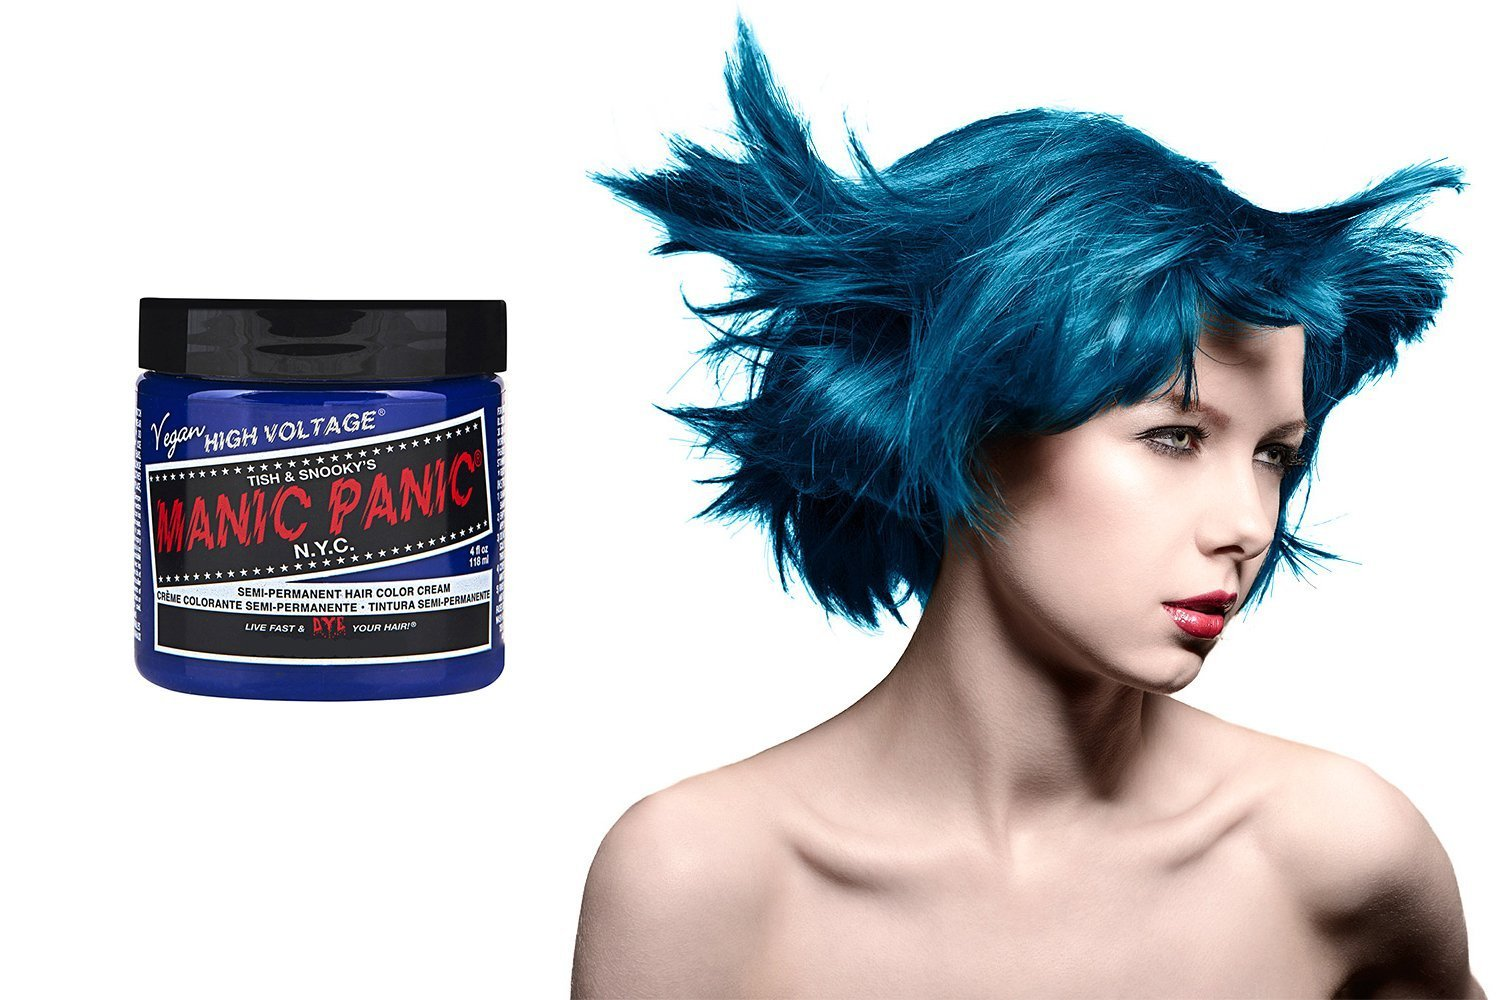 Manic Panic Semi Permanent Hair Dye Colour Cream - After Midnight Blue